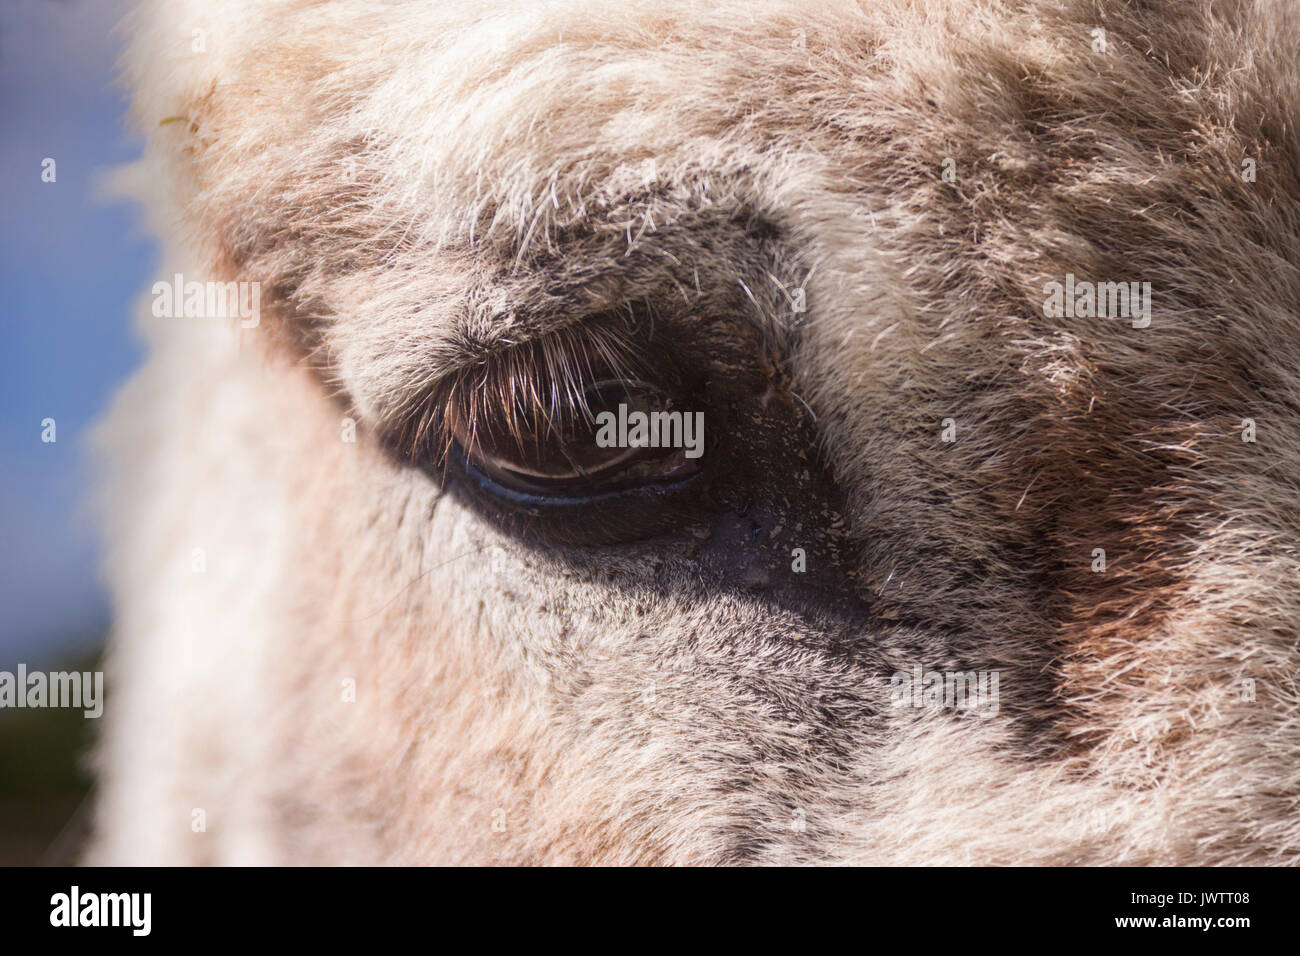 Close up of the eye of a donkey at Sidmouth donkey sanctuary - Stock Image